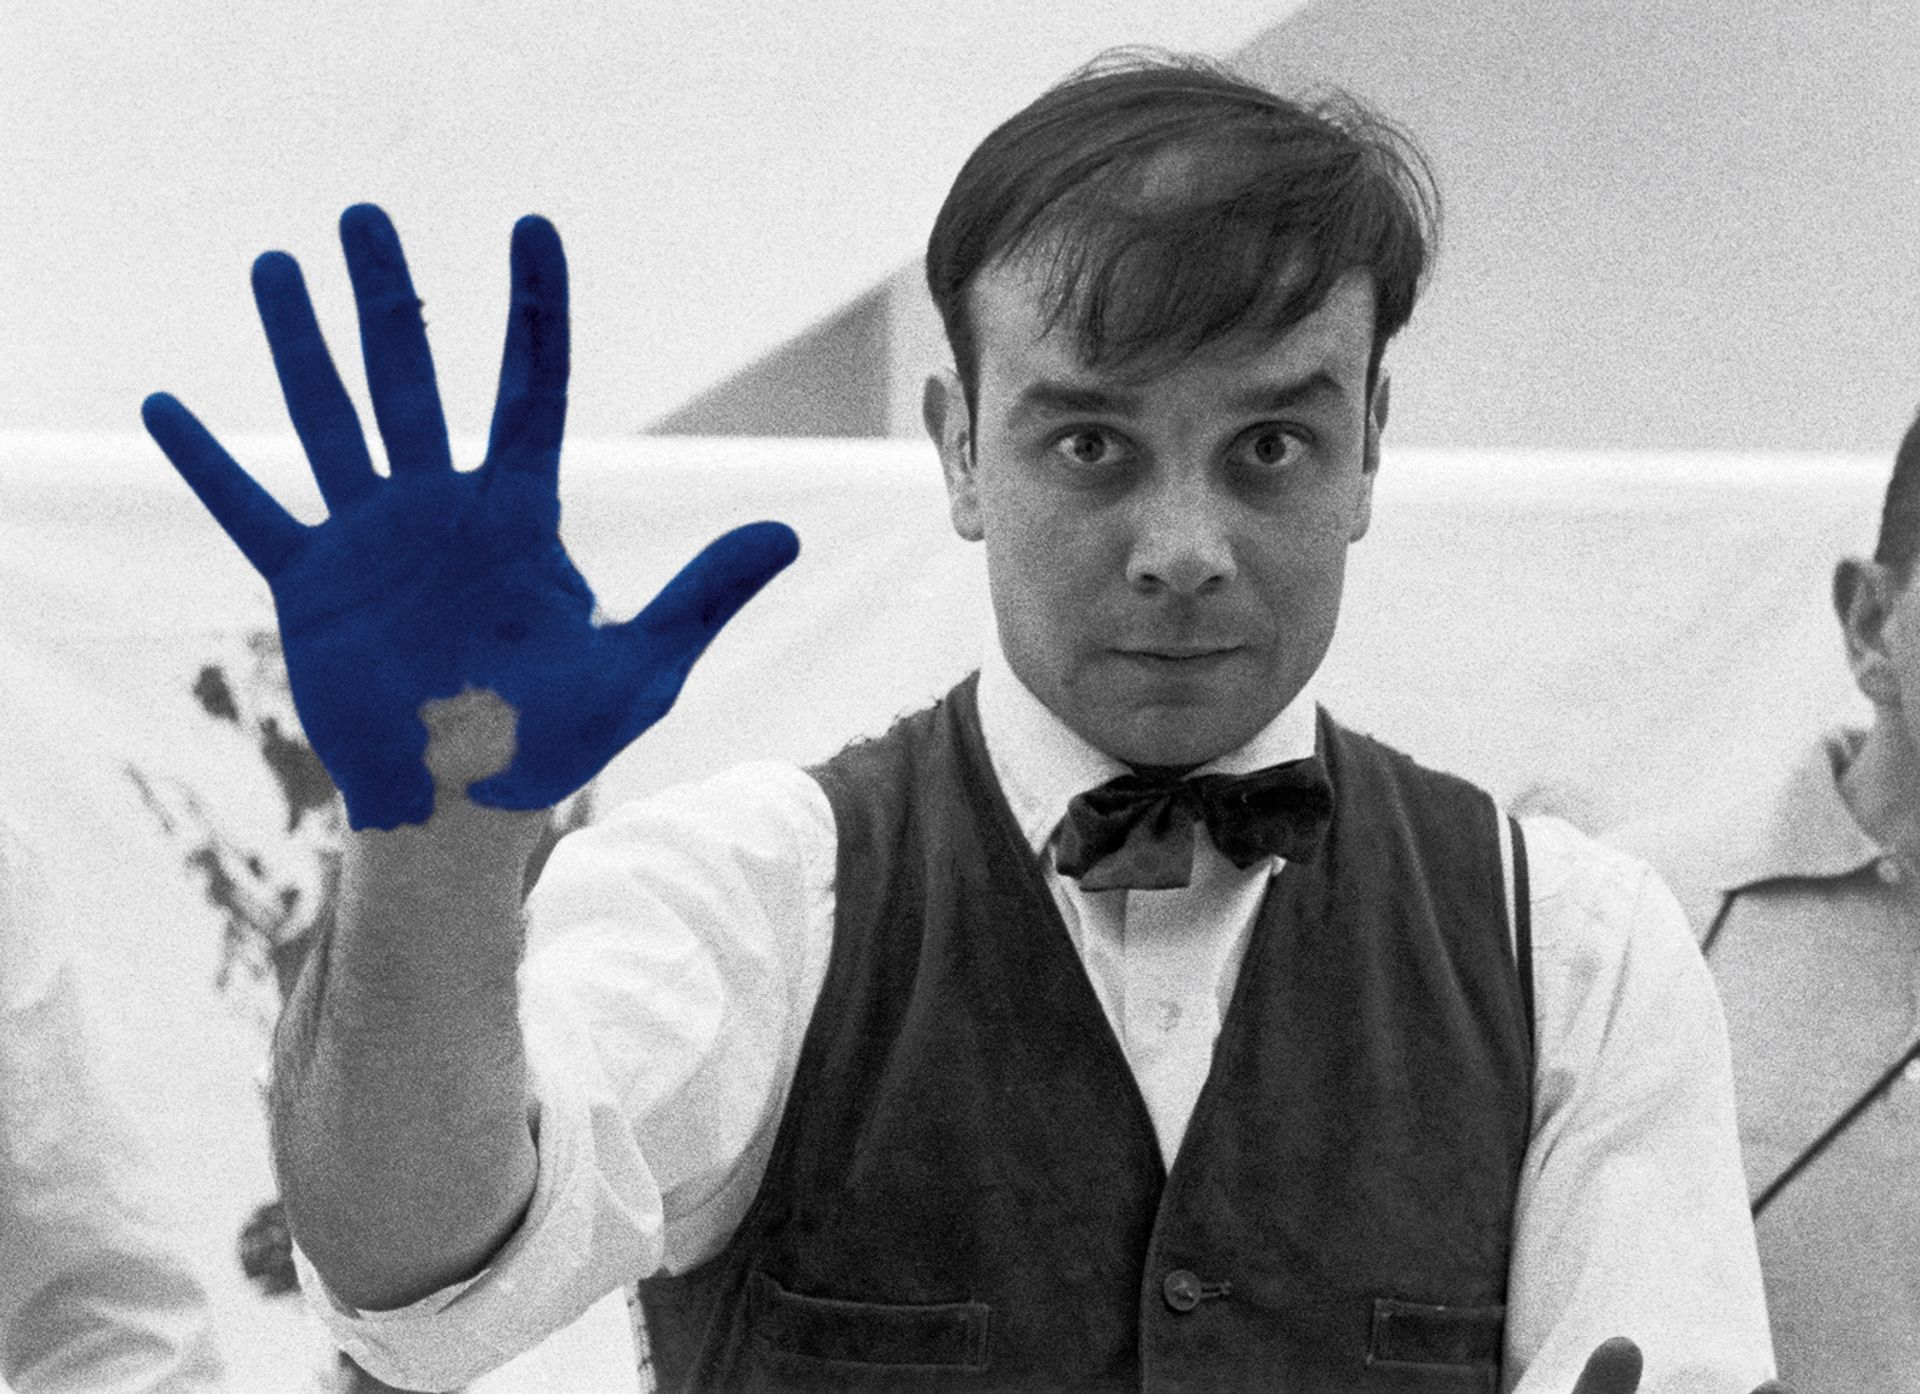 Yves Klein during the shooting The Heartbeat of France, a documentary by Peter Morley Photo : Charles Wilp / BPK, Berlin